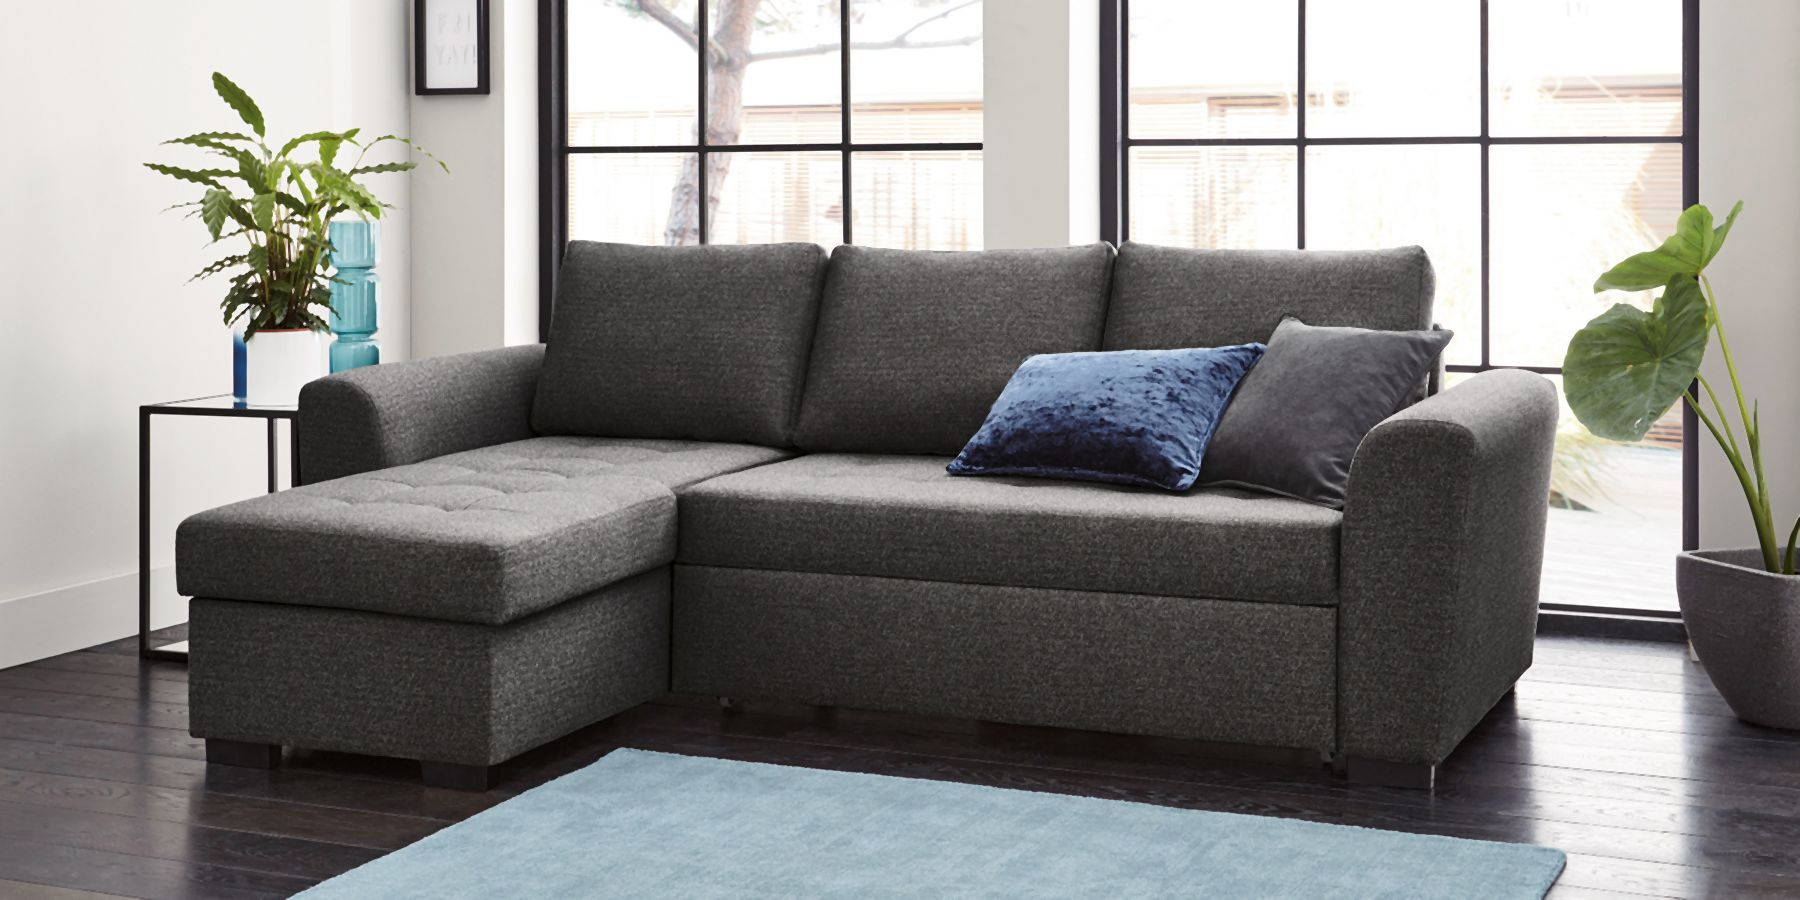 Sofa Bed Buy Buy Quentin Universal Corner Storage Sofabed 4 Seats Studio